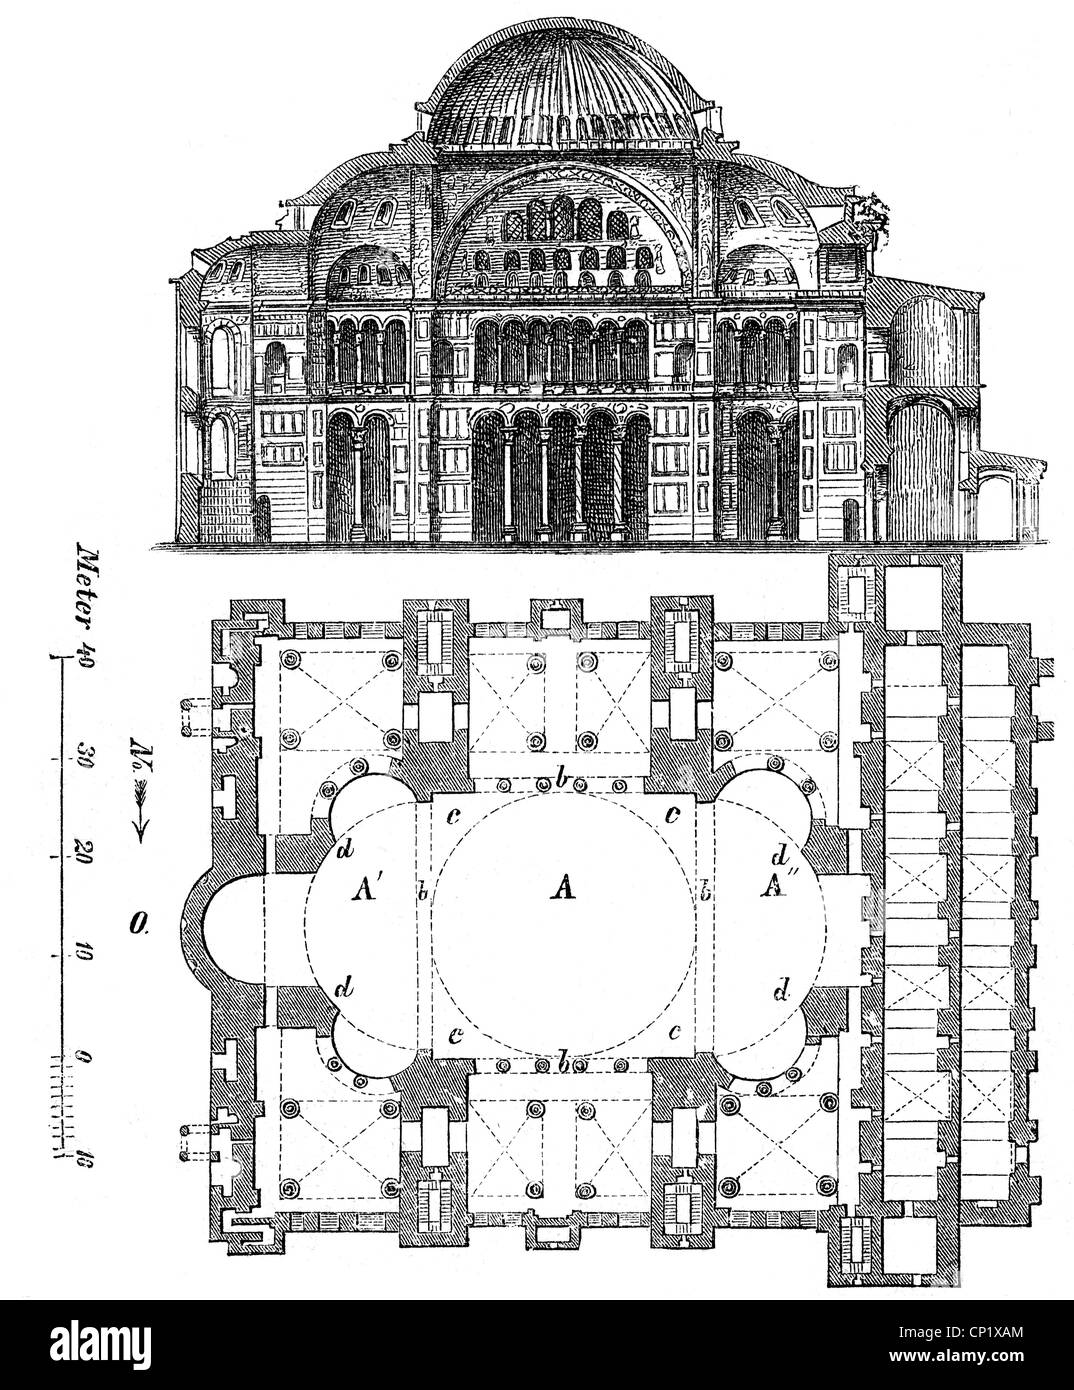 architecture, ground plans, Hagia Sophia, Istanbul, built ...